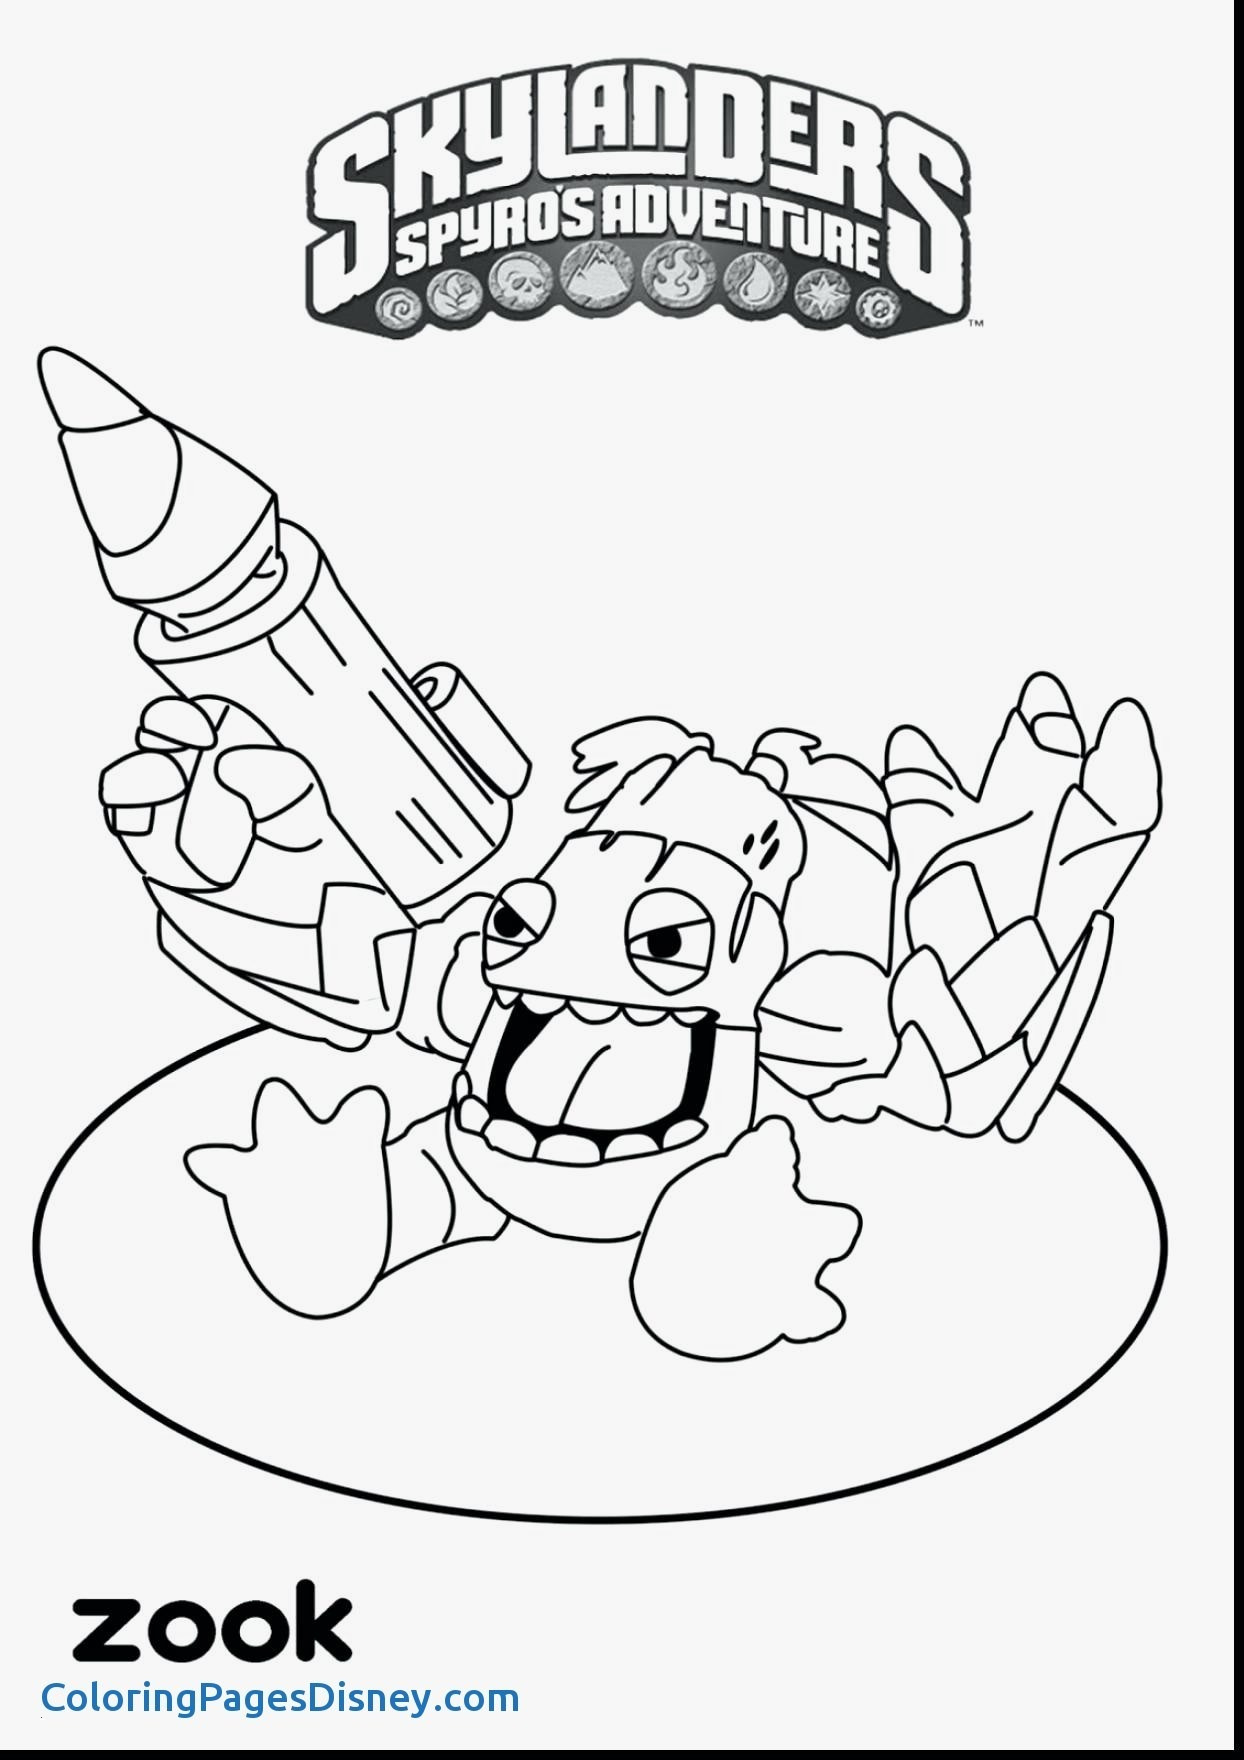 printable number coloring pages Collection-Dinosaur Coloring Pages Free Printable Elegant Free Printable Numbers Coloring Pages Letramac 6-e